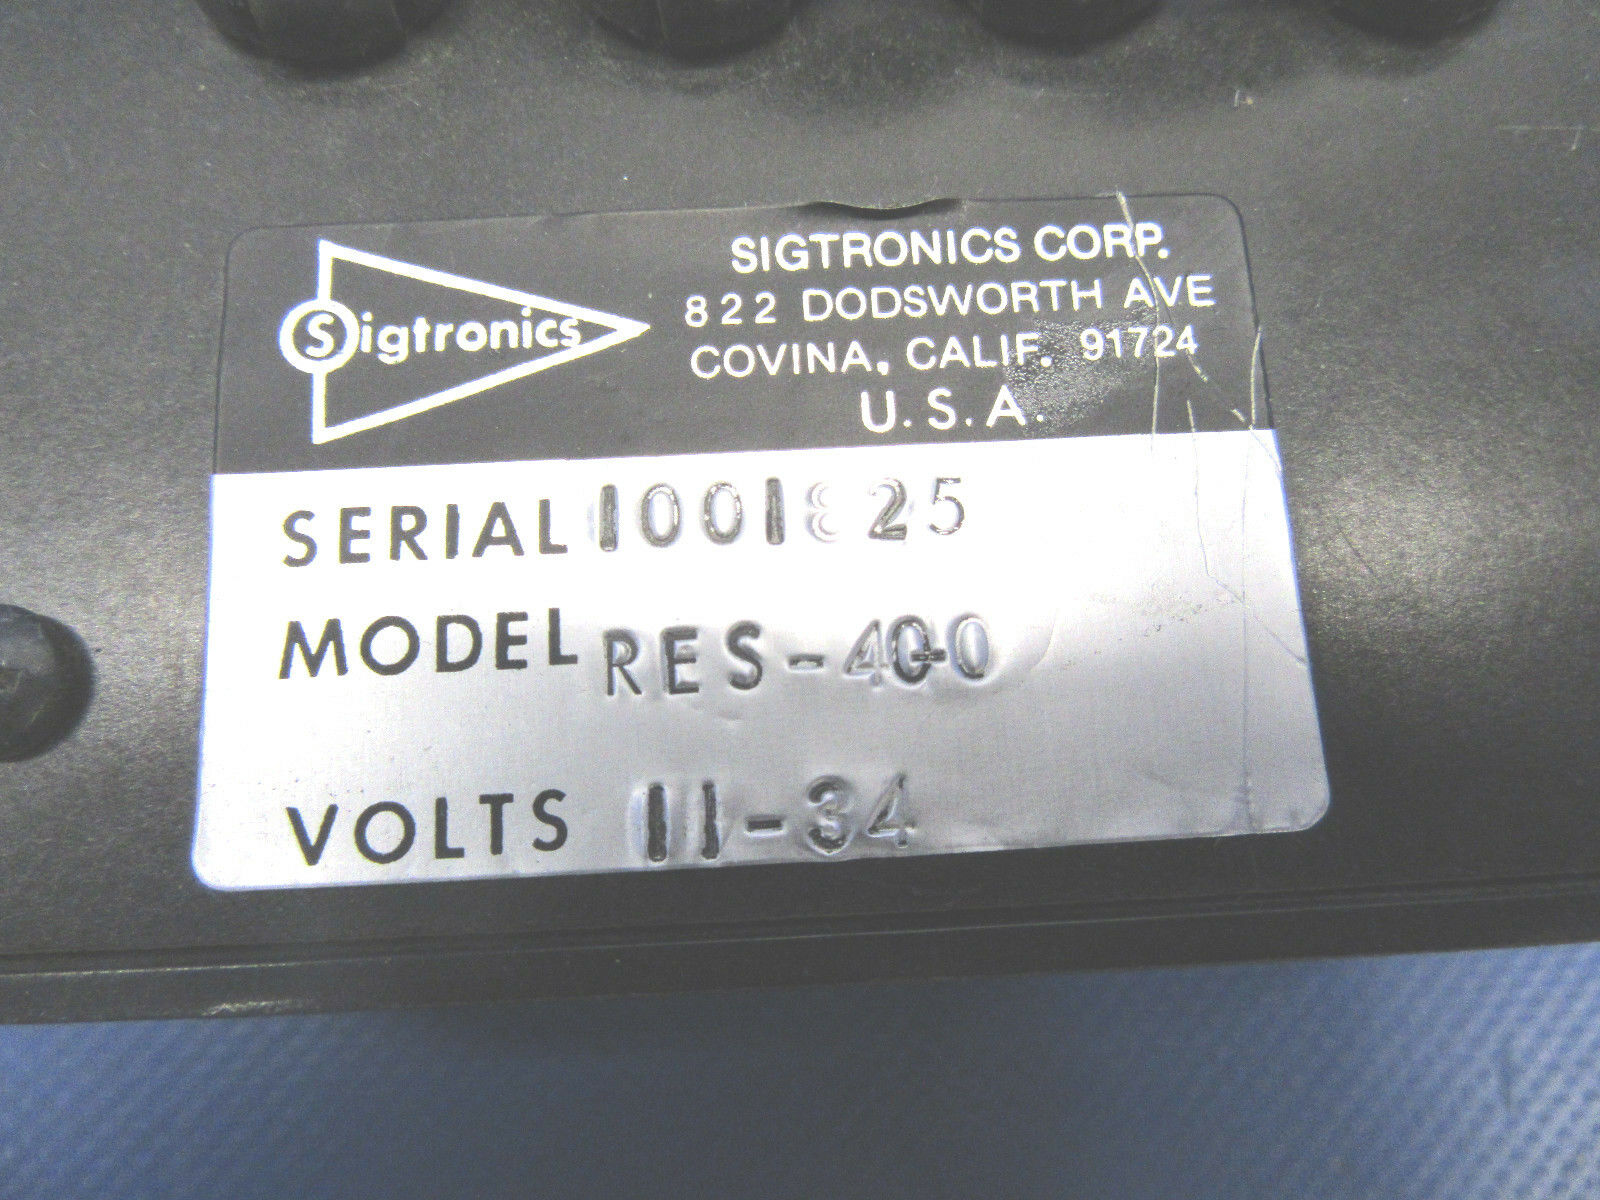 Sigtronics Stereo Switcher 11-34 Volts P/N RES-400 (0518-344)